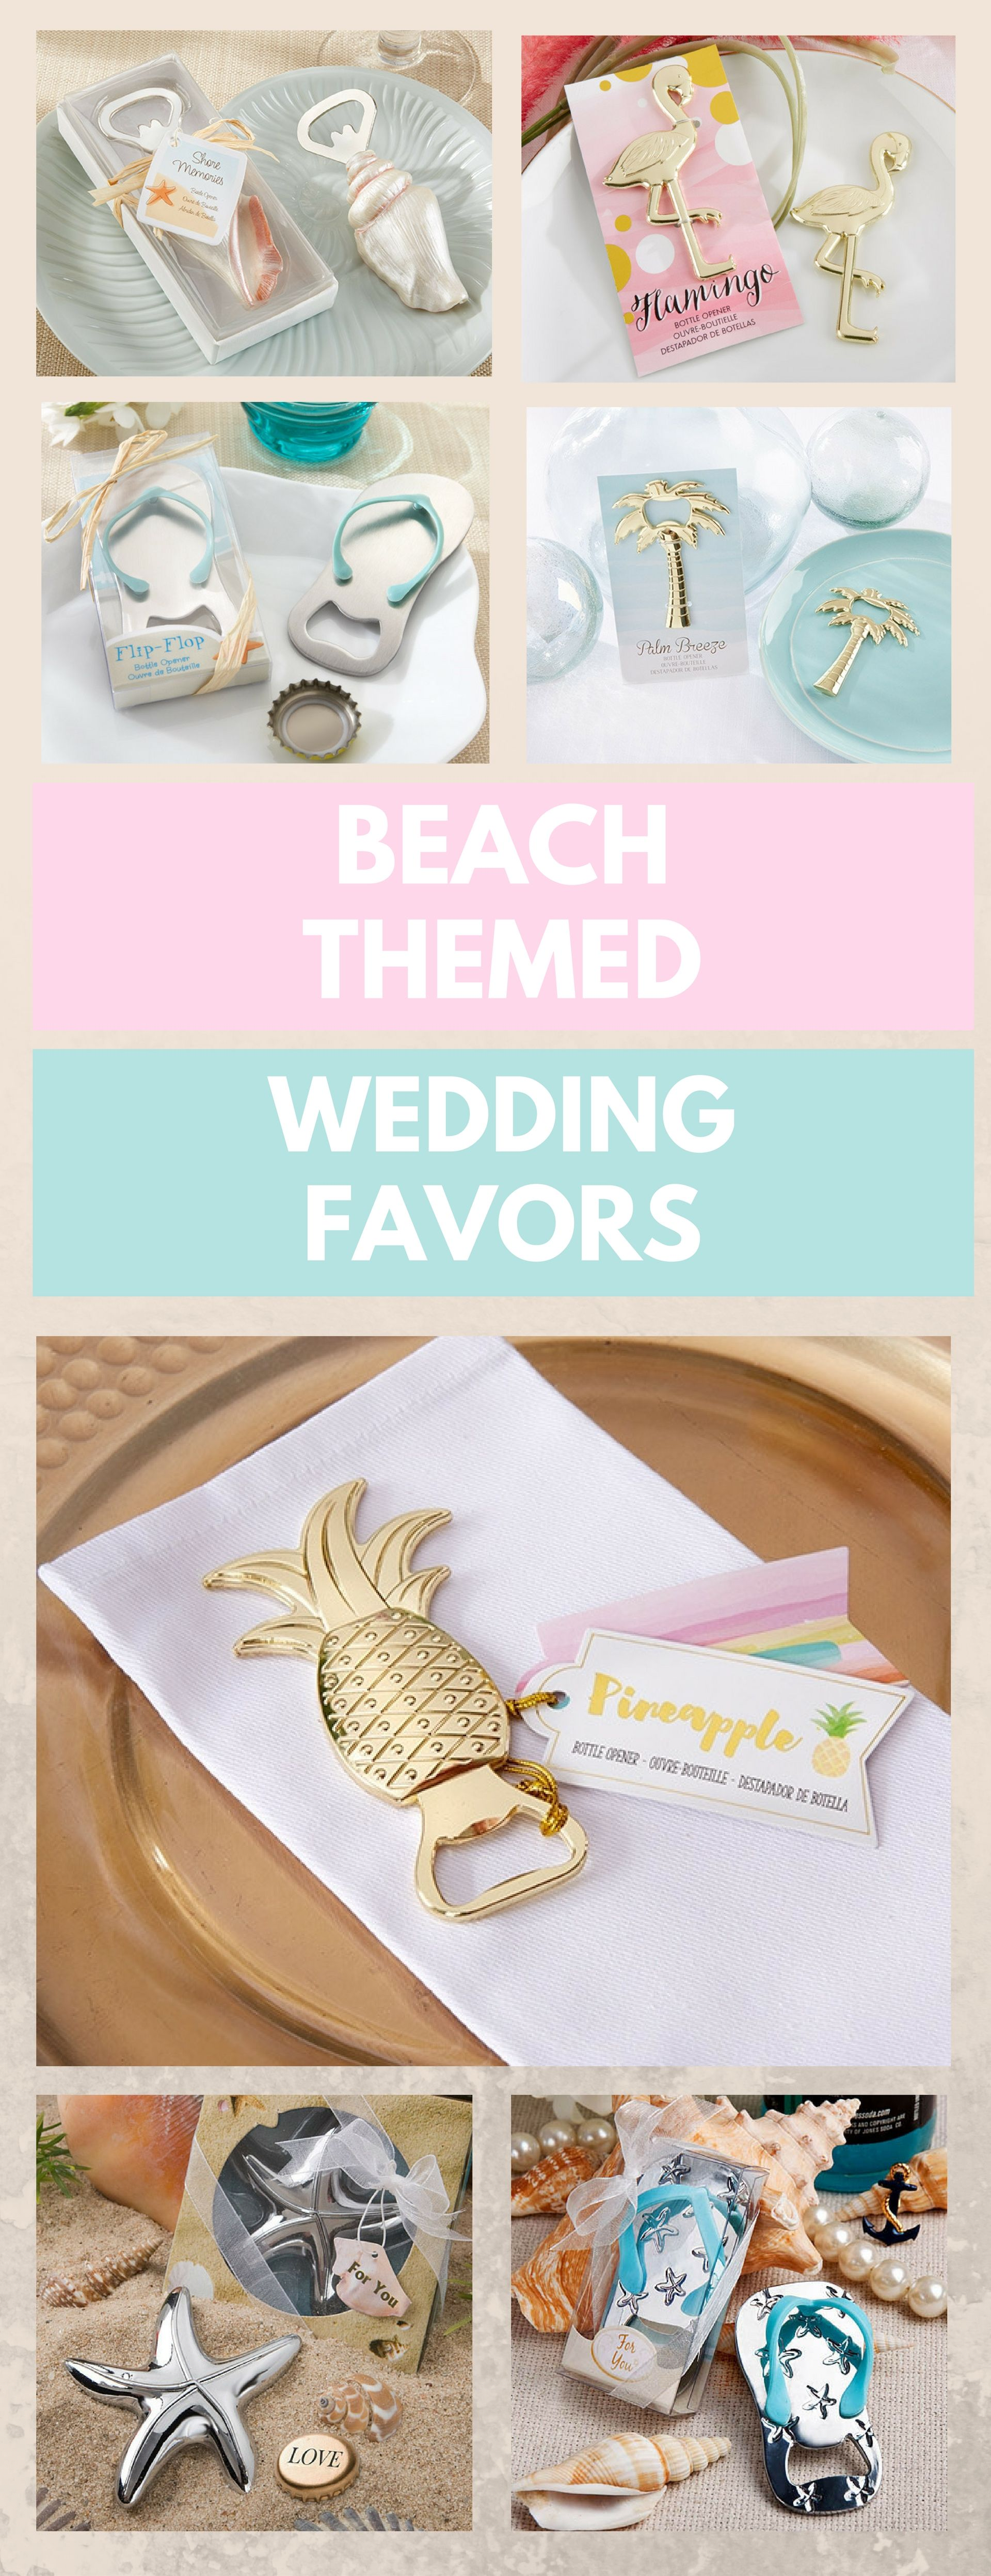 These Beach Theme Wedding Favors Are Perfect For The Summer Wedding